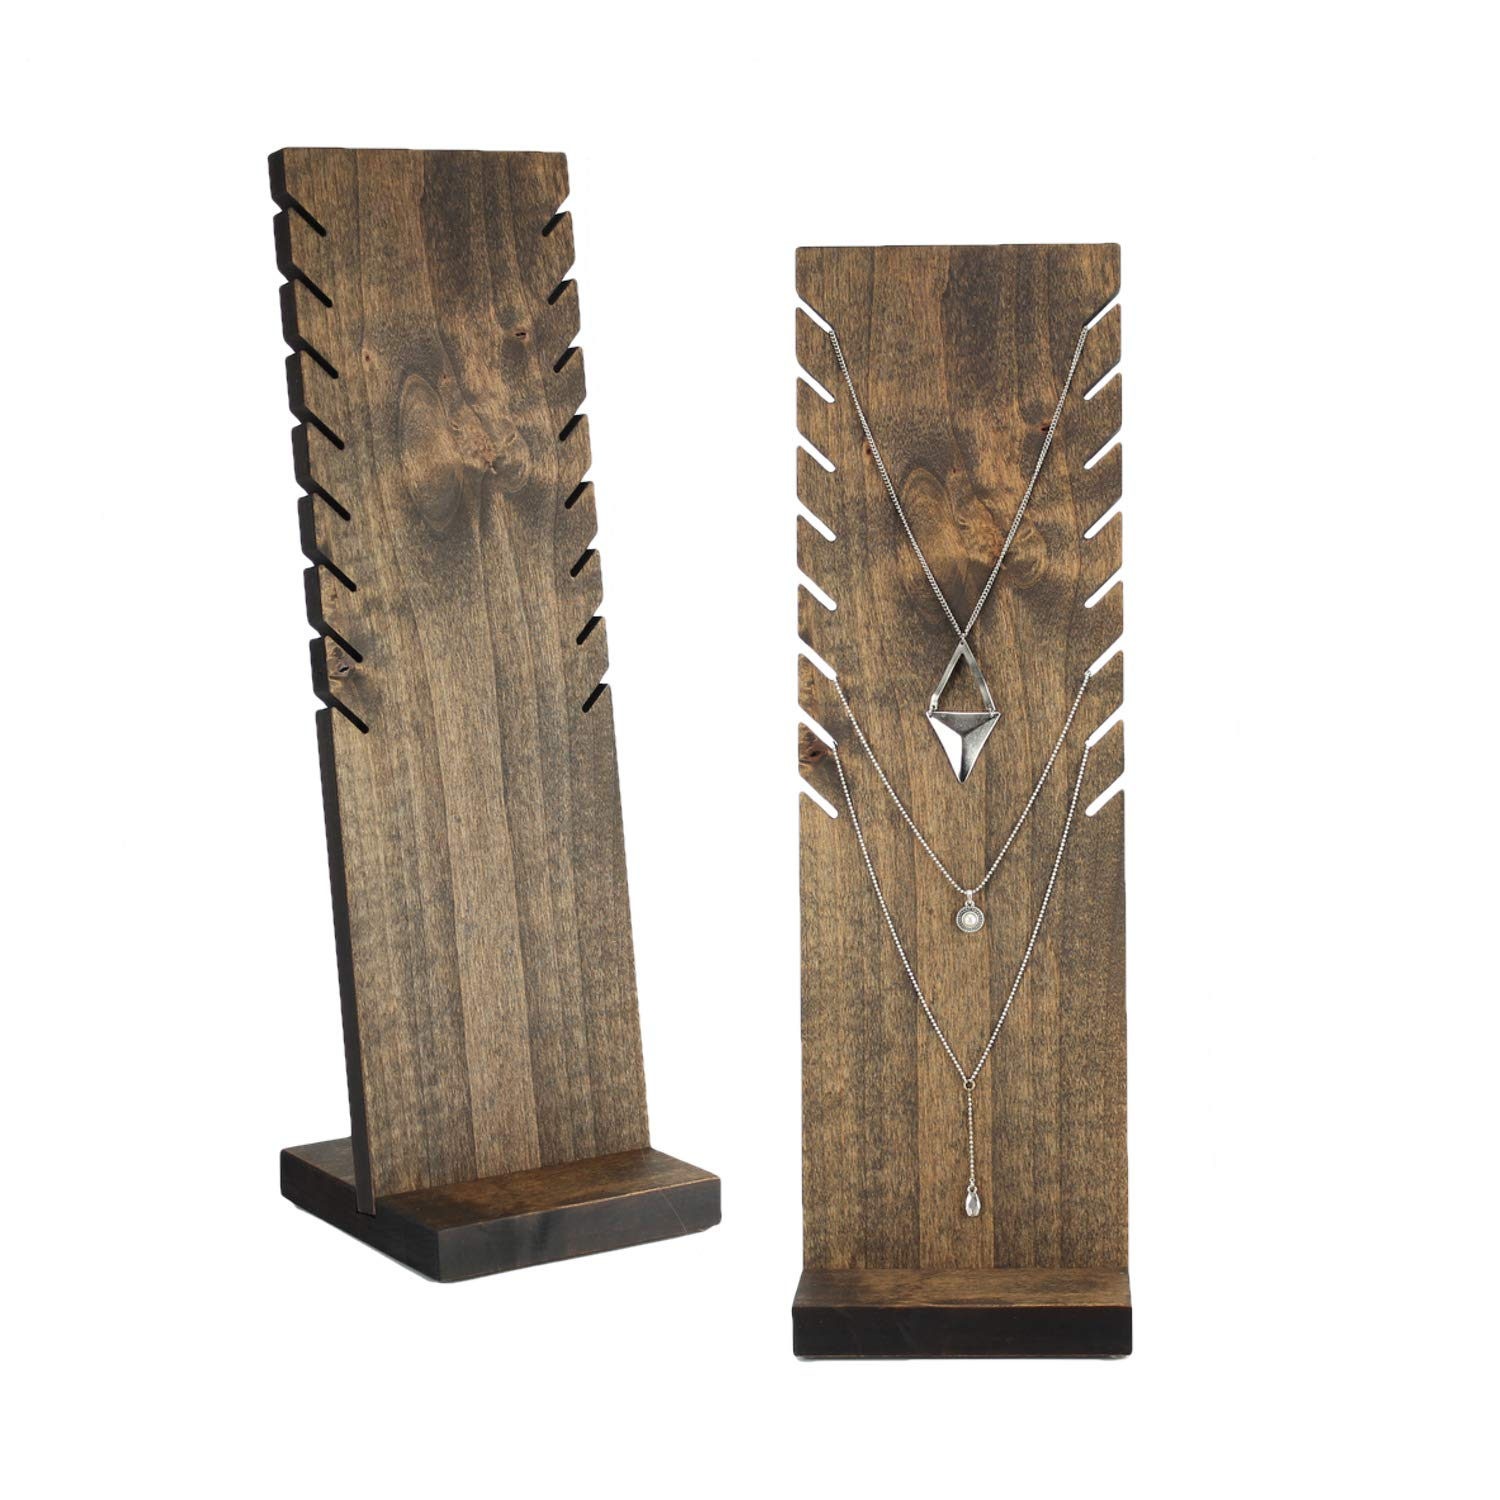 Set of 2 Wood Necklace Display Stands Wood Jewelry Display Stands - 18 inches tall Slotted Solid Hardwood Craft Show Display Retail Display Jewellery Display